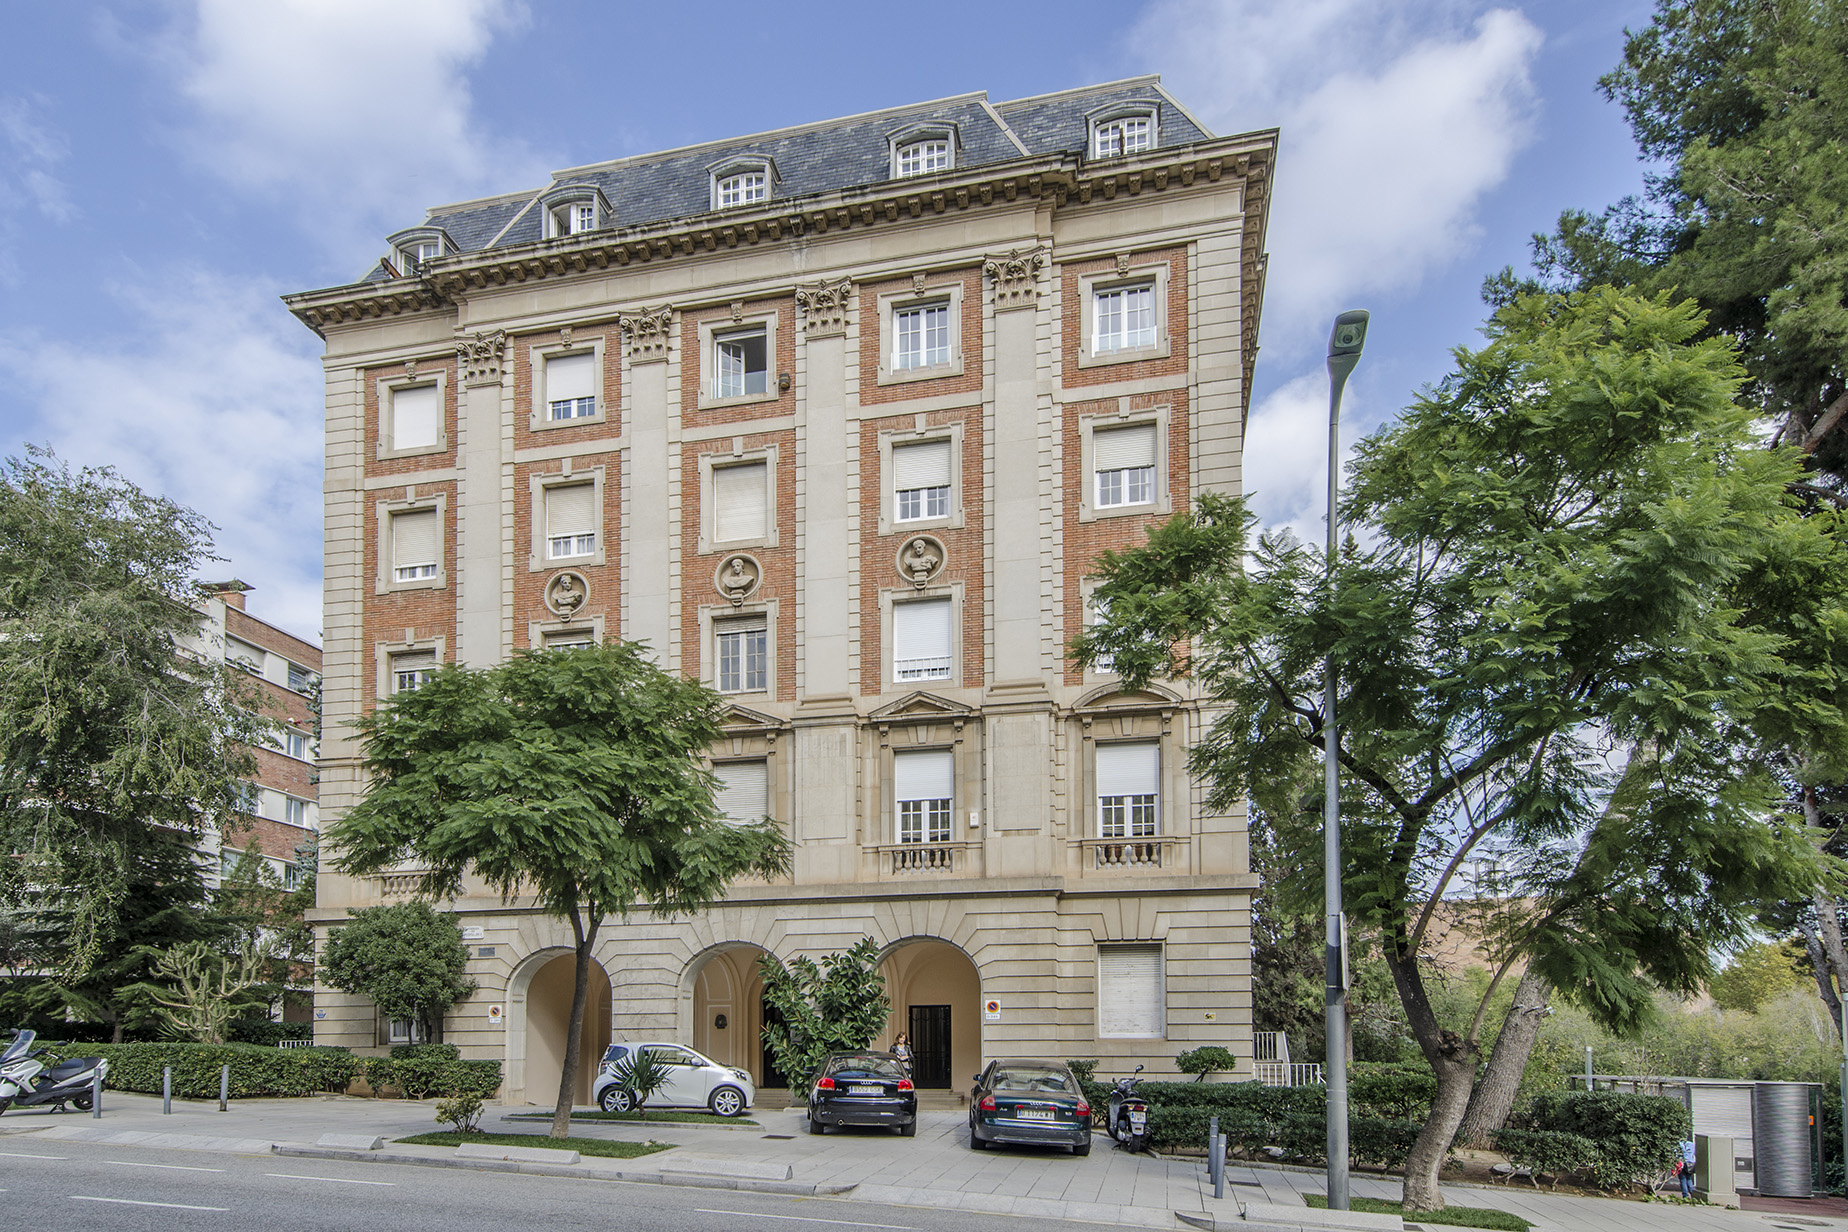 Apartamento por un Venta en Elegant Apartment to Reform in Emblematic Building of Pedralbes Zona Alta, Barcelona City, Barcelona, 08034 España